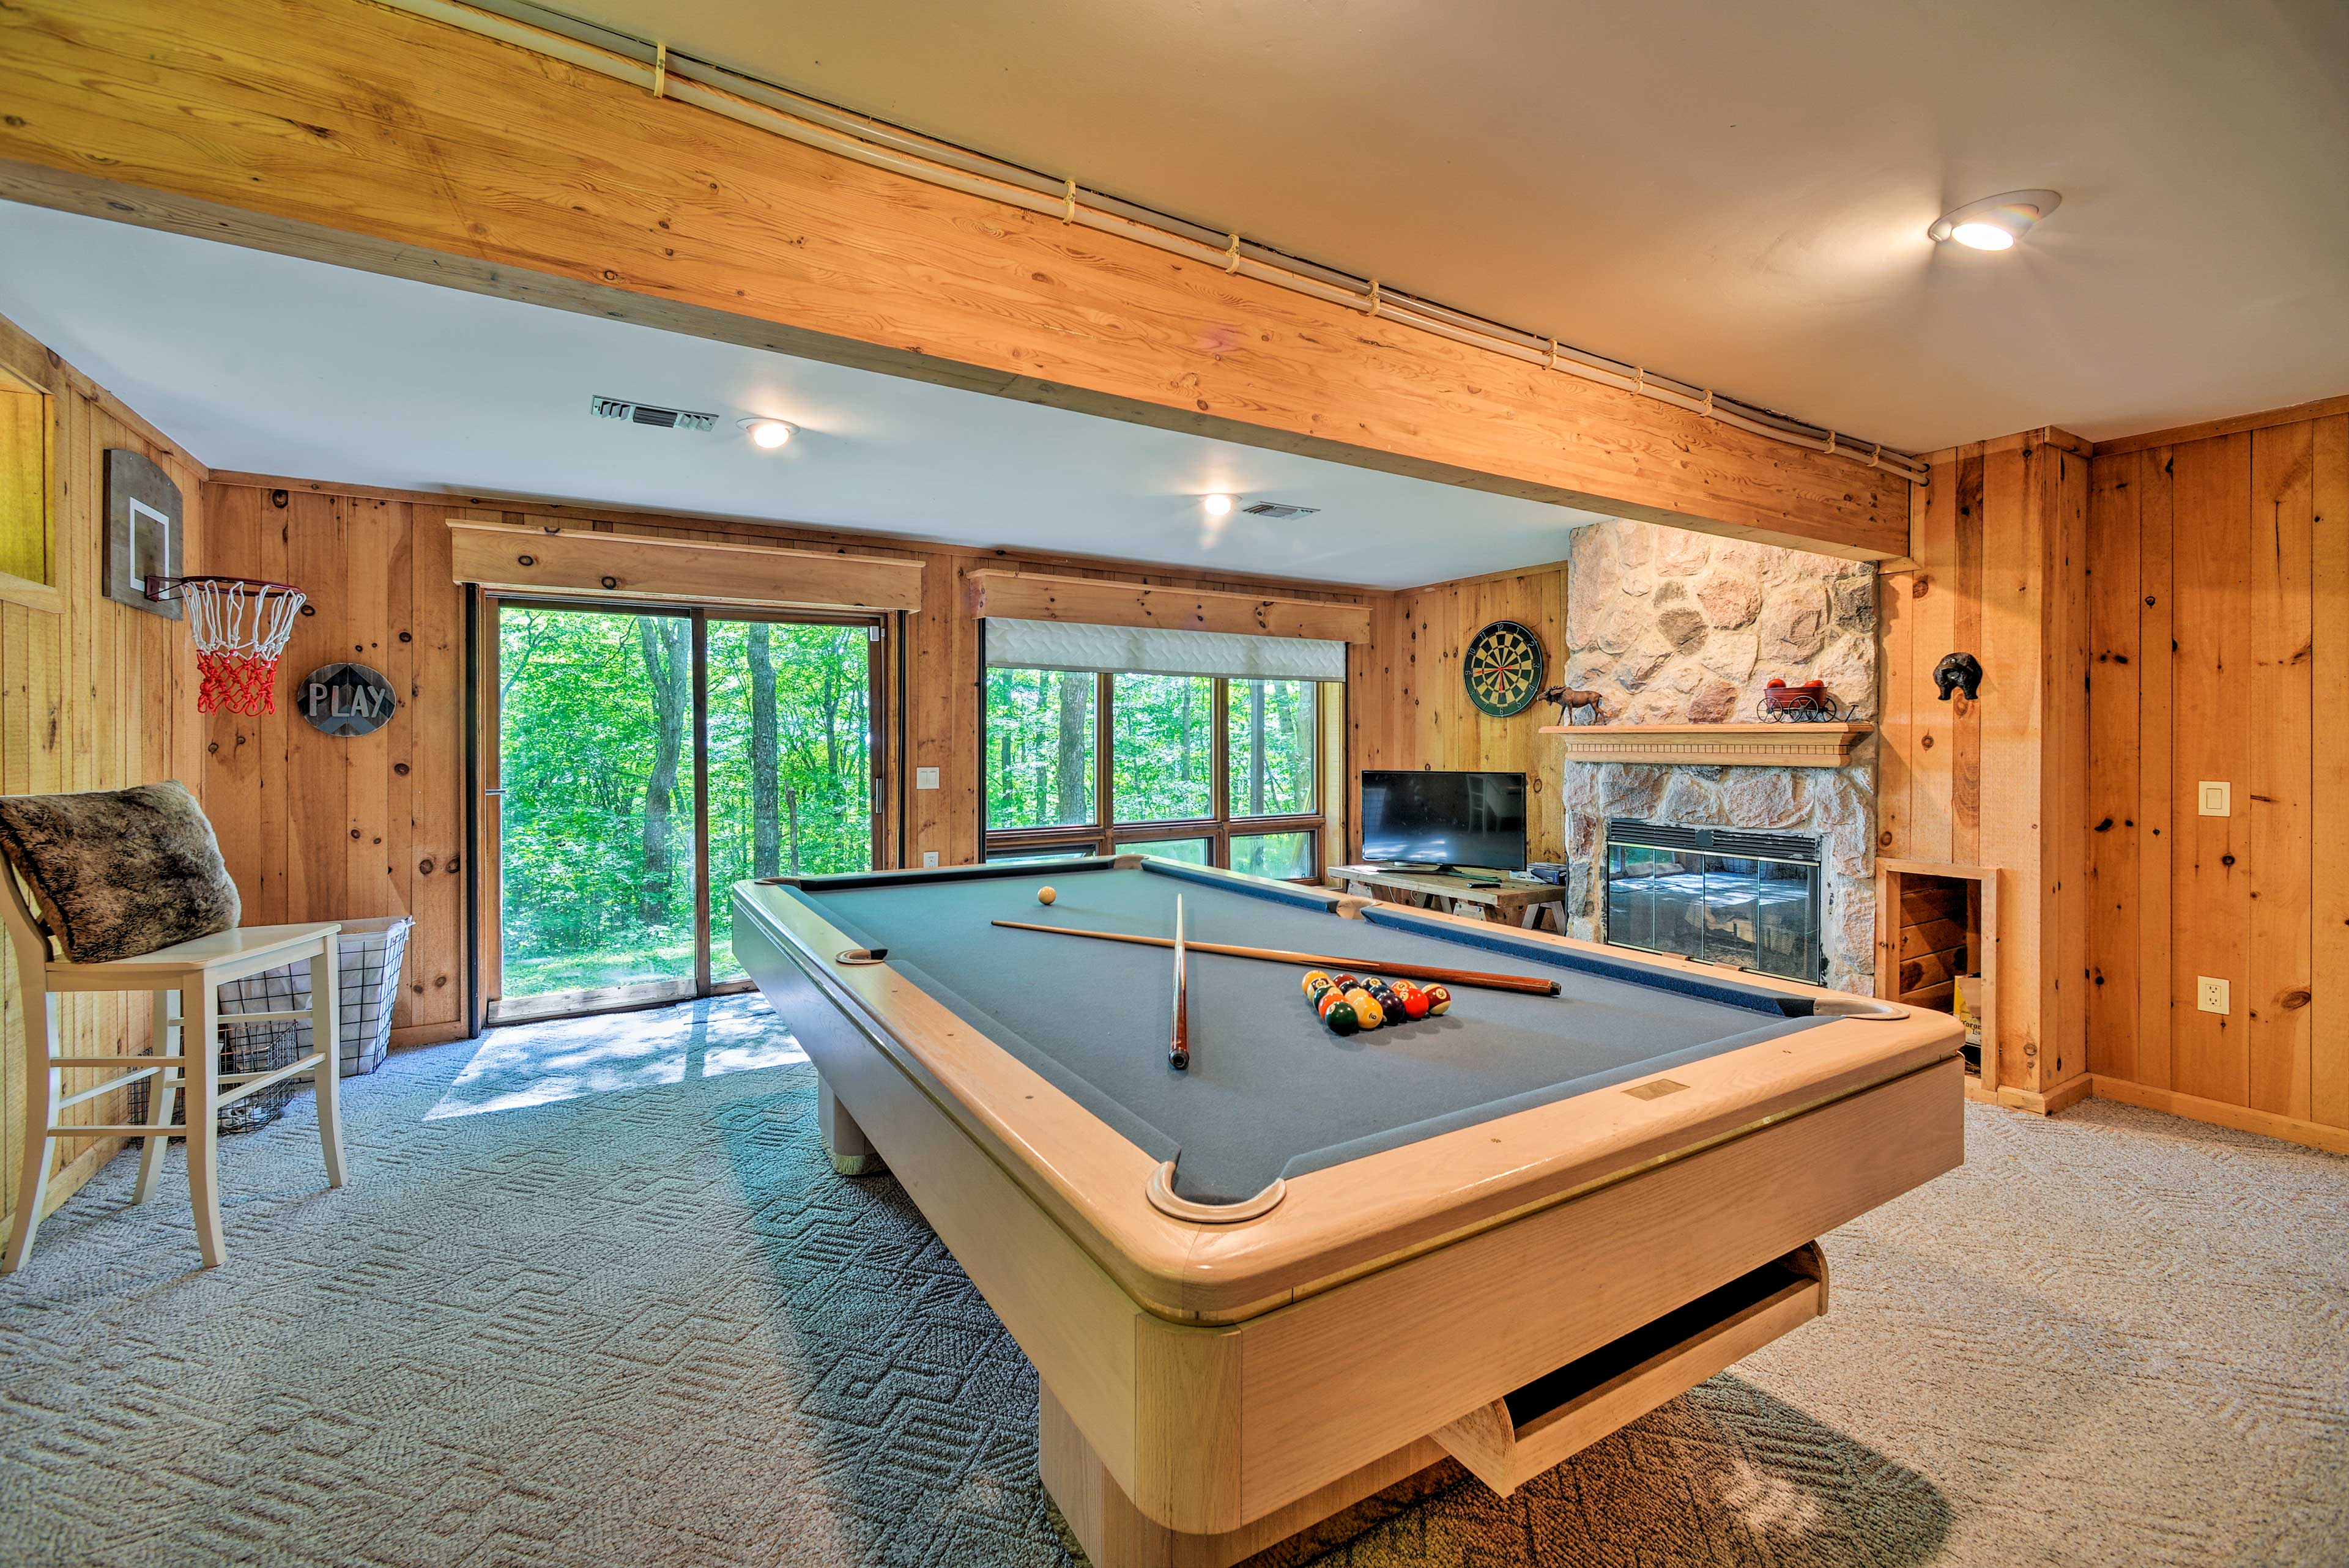 Game Room | Fireplace | Smart TV